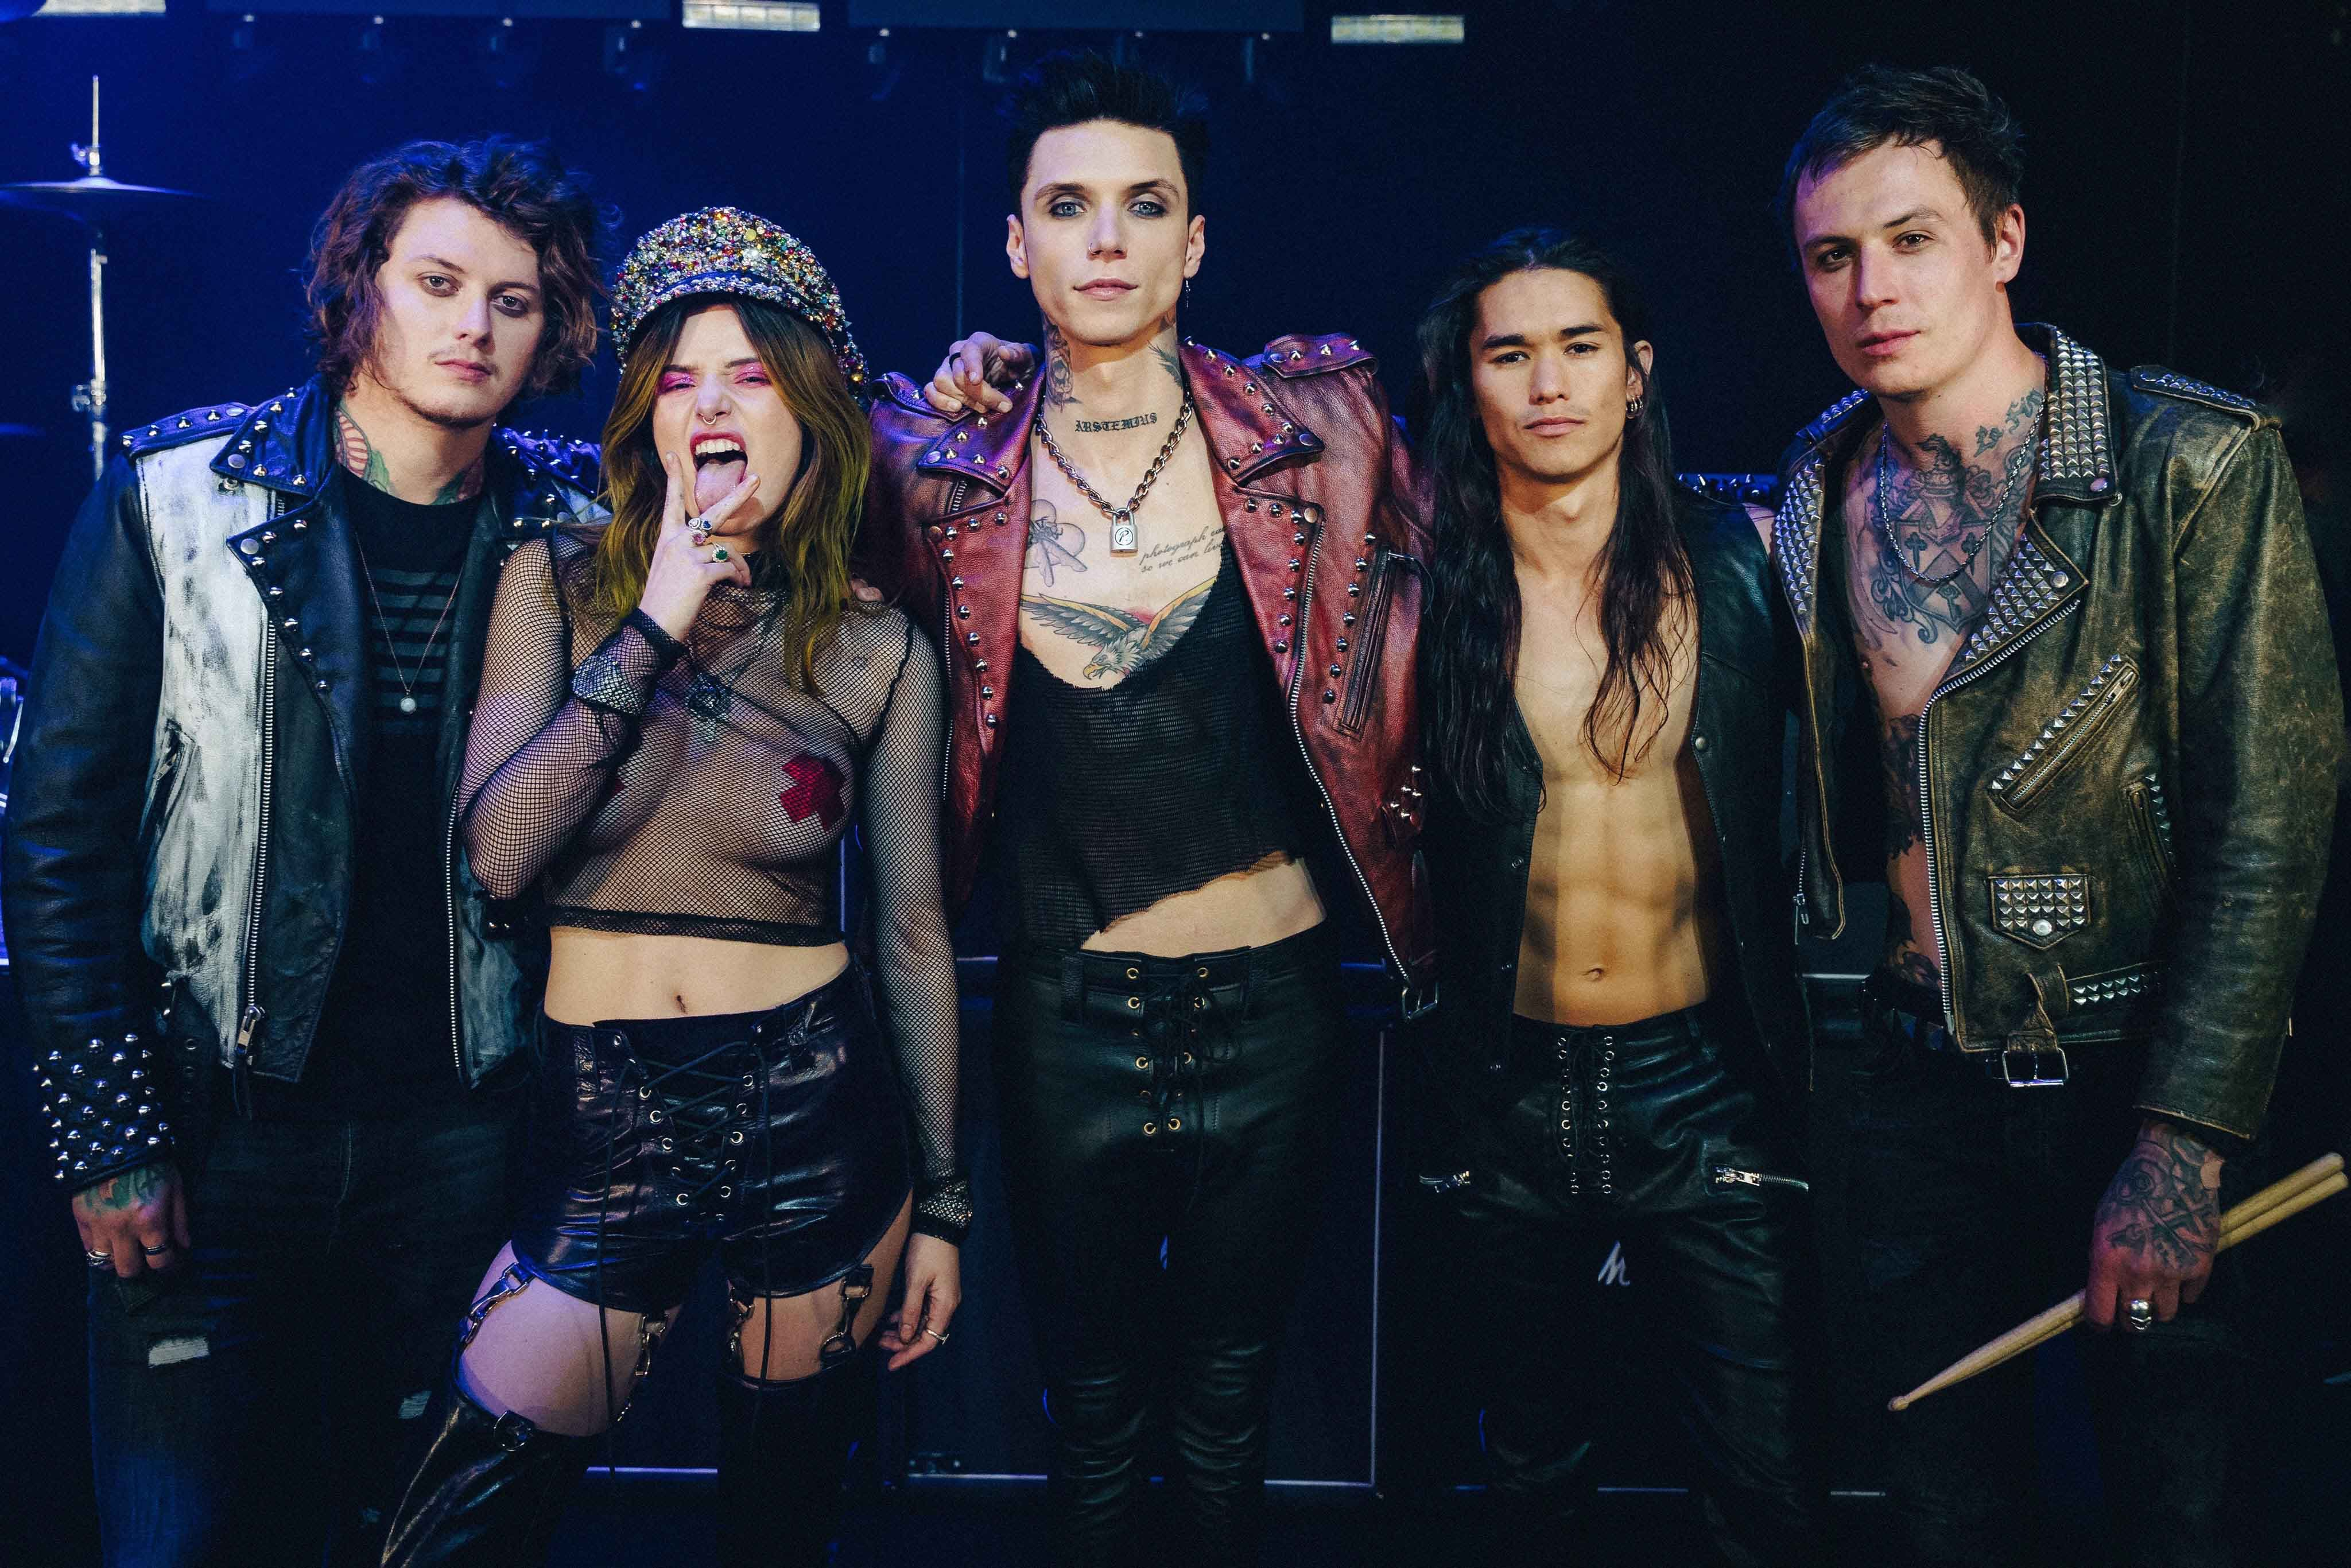 New Series 'Paradise City' Starring The Relentless Set To Premiere on Amazon Prime On March 25th